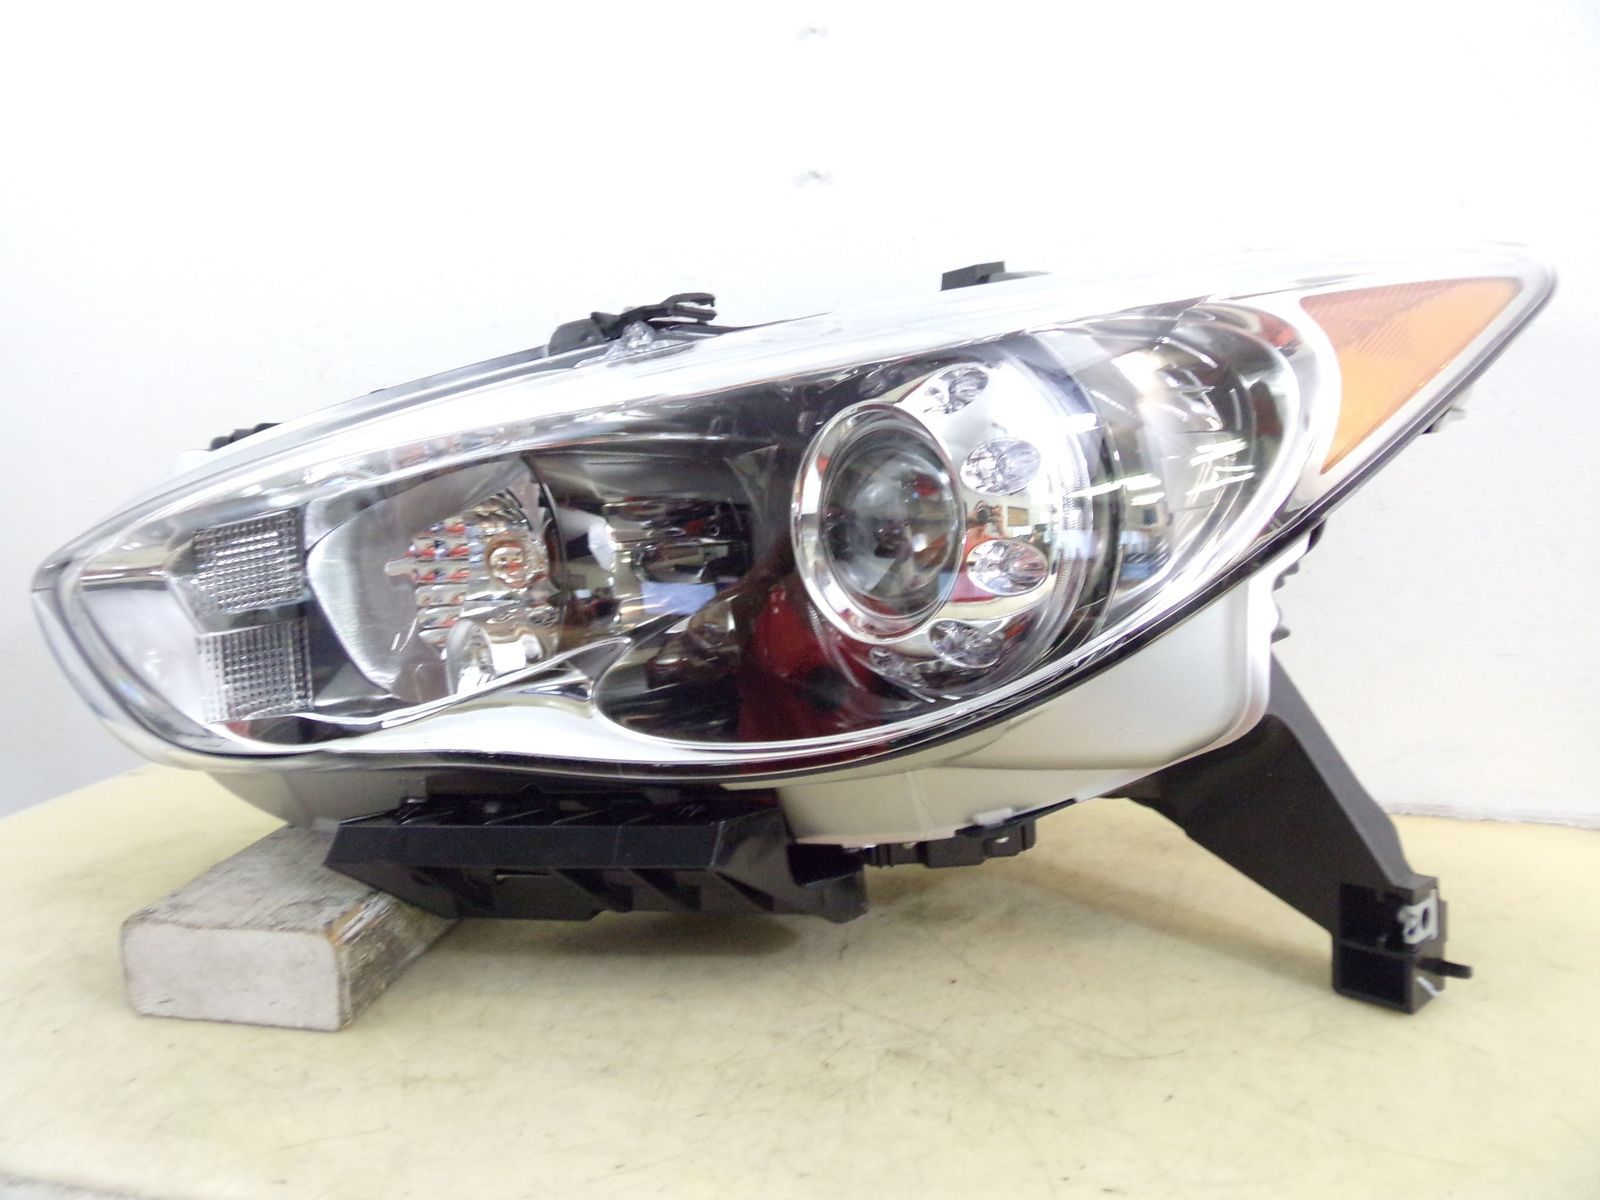 Primary image for 2013 INFINITI JX35 2014 2015 QX60 DRIVER LH XENON HID HEADLIGHT OEM 95